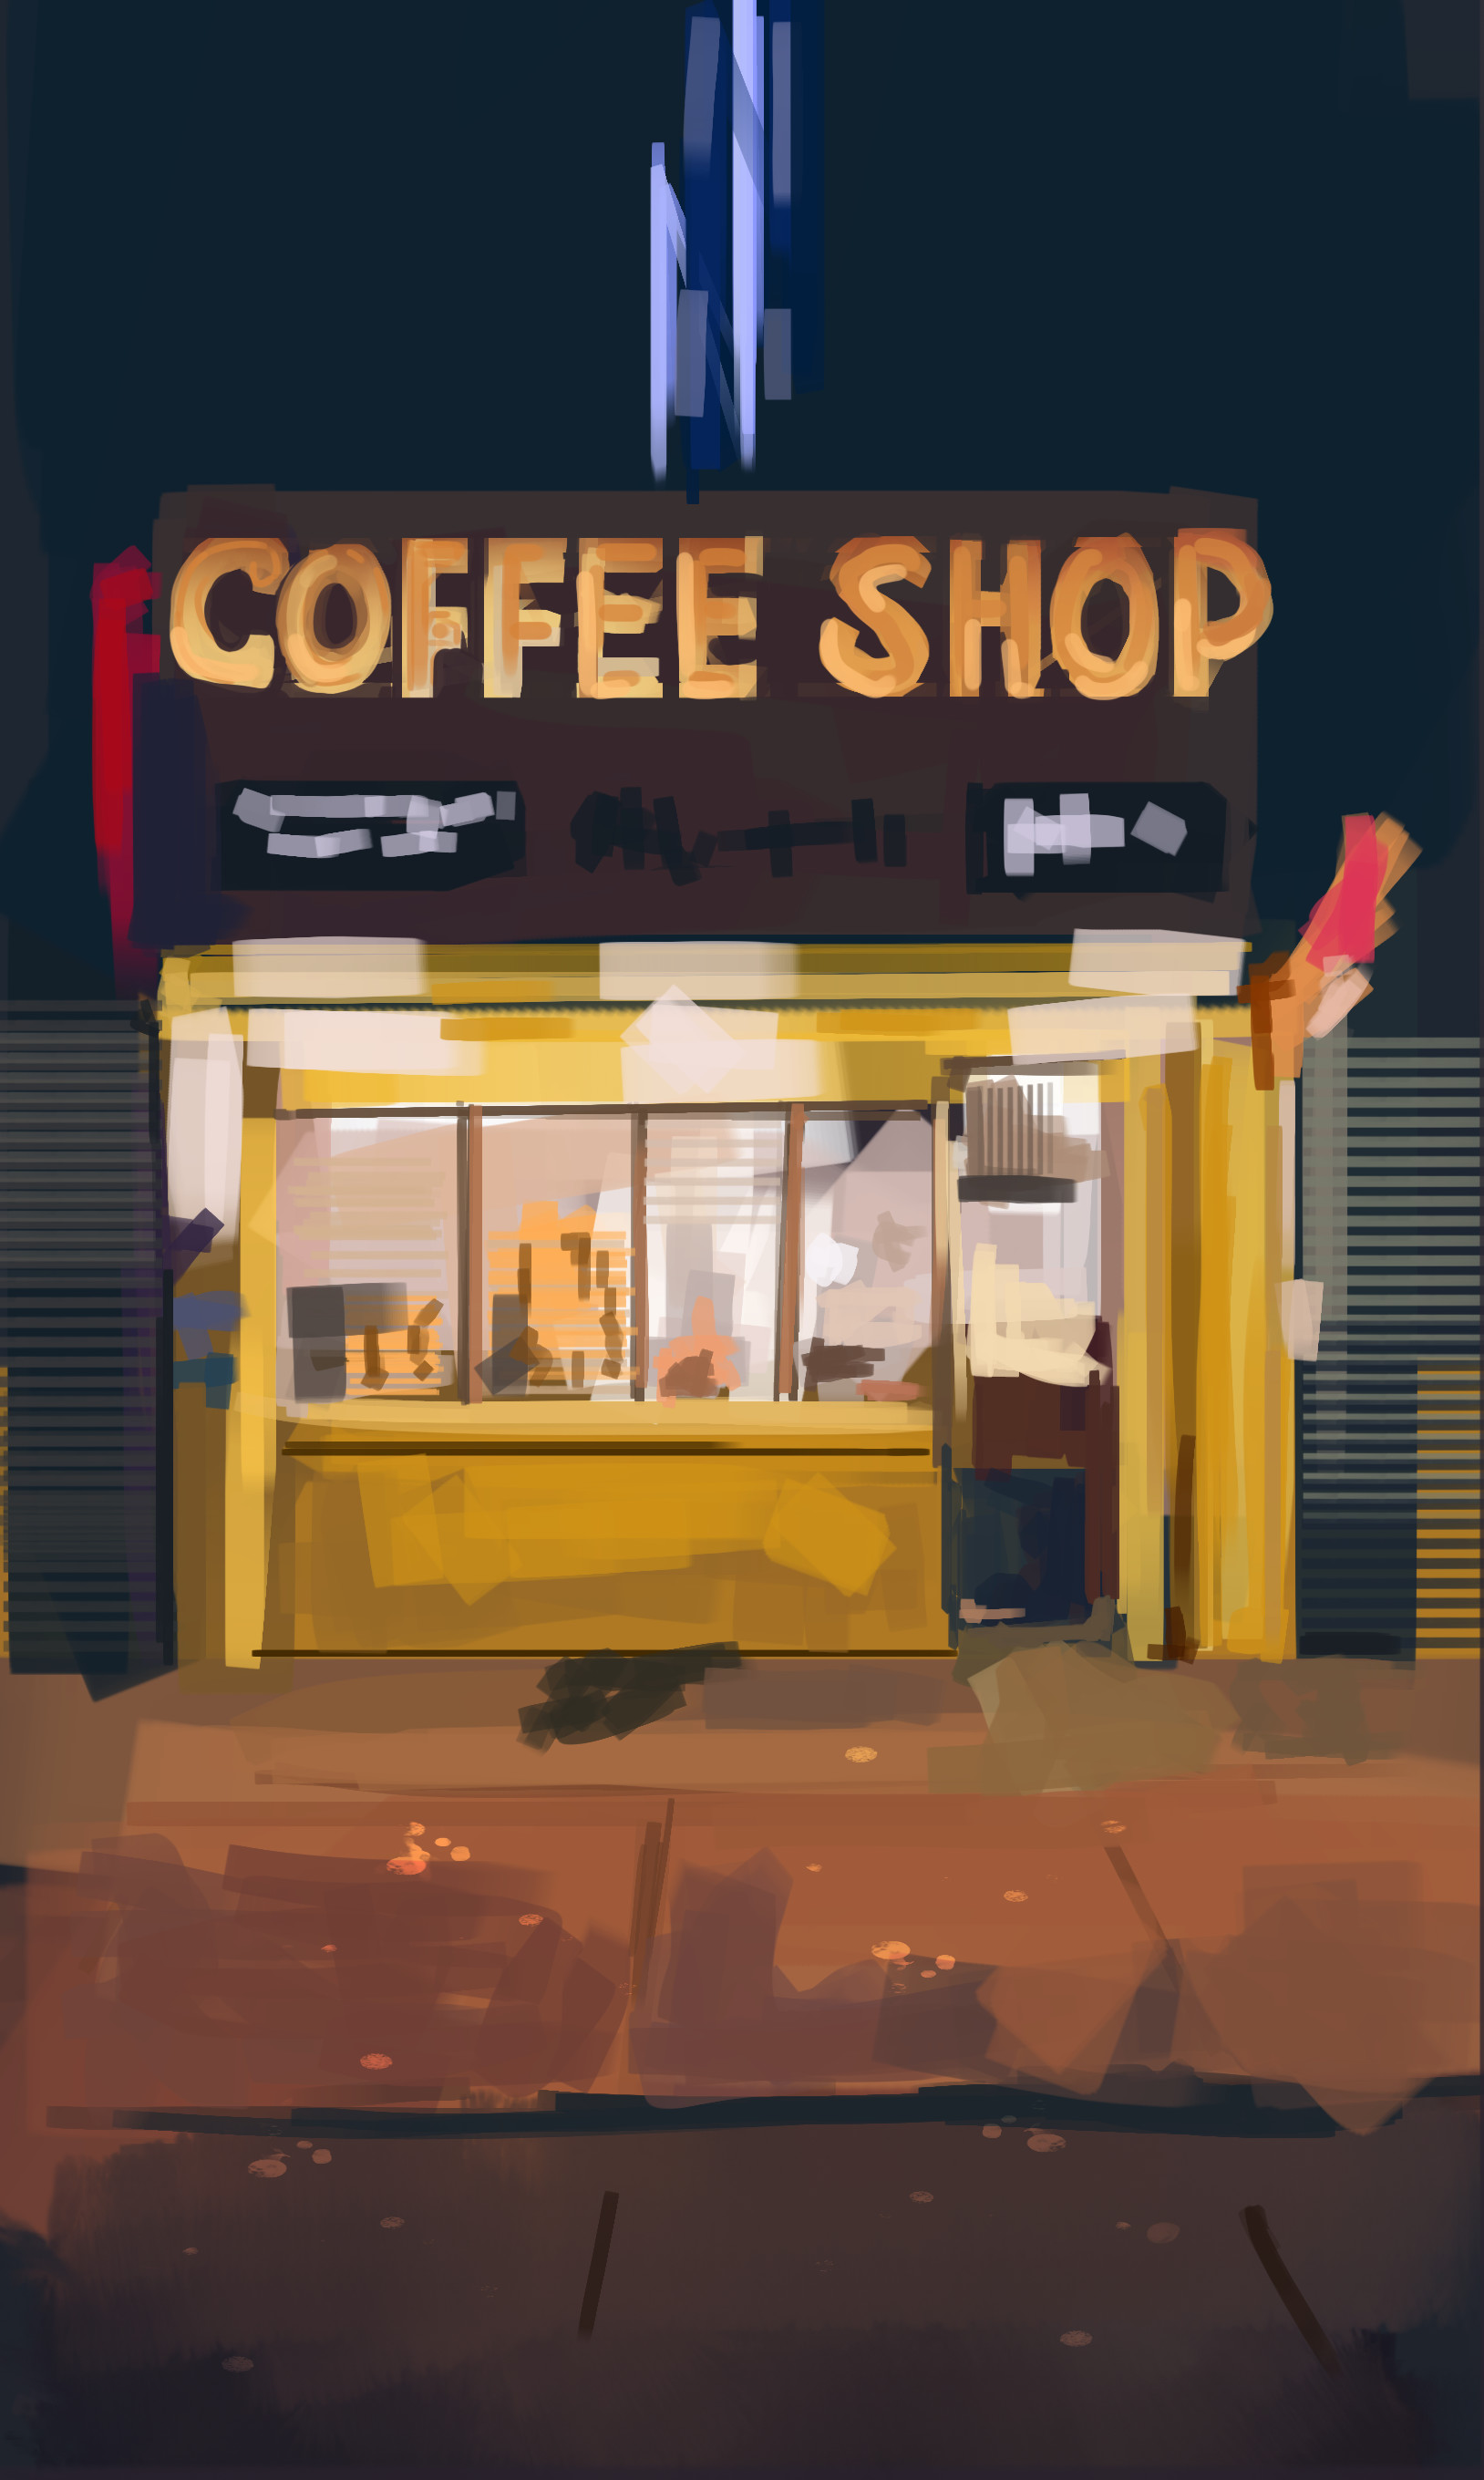 Jack dowell coffee shop